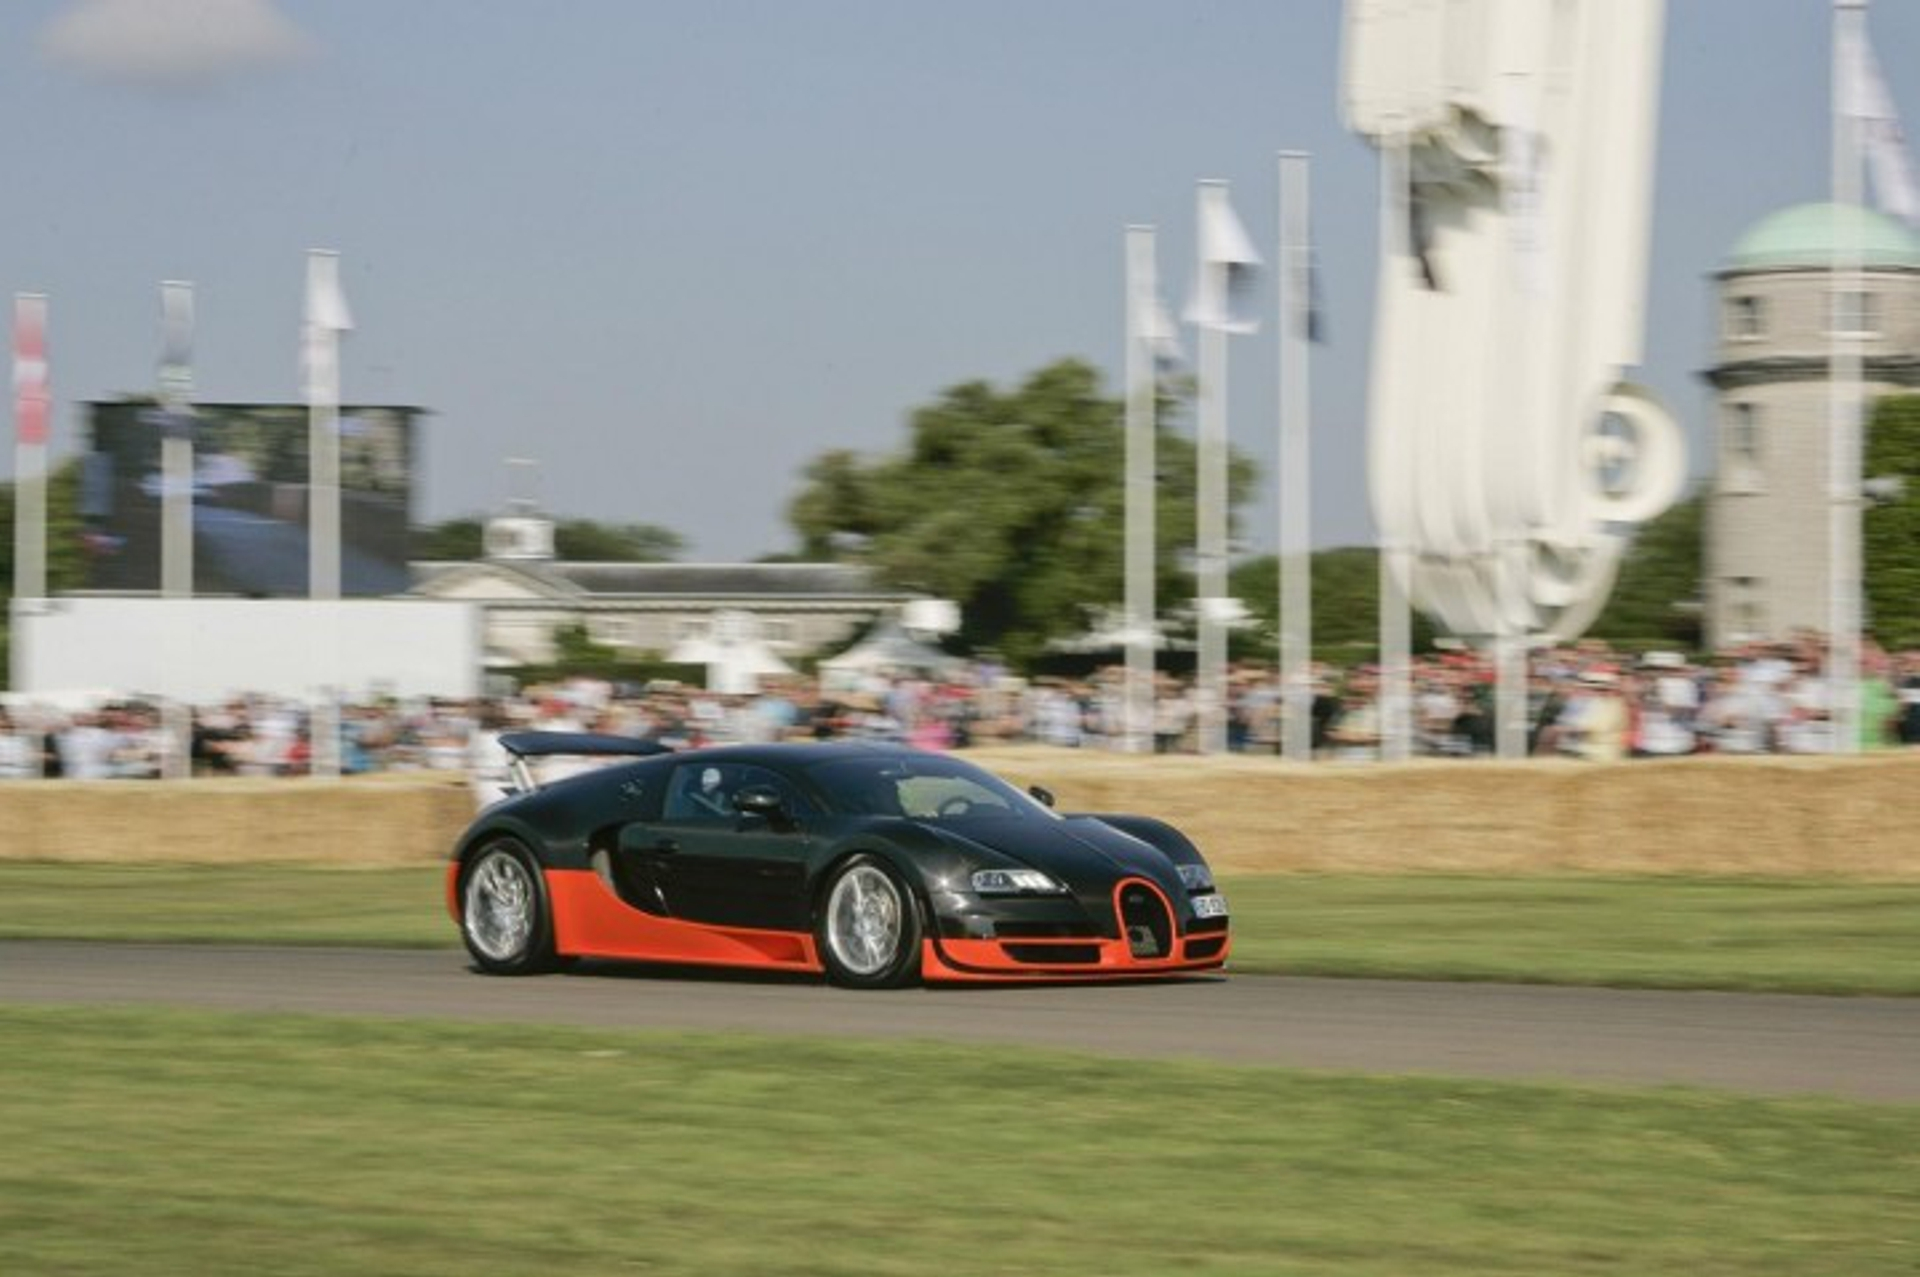 Bugatti Veyron at Goodwood Festival